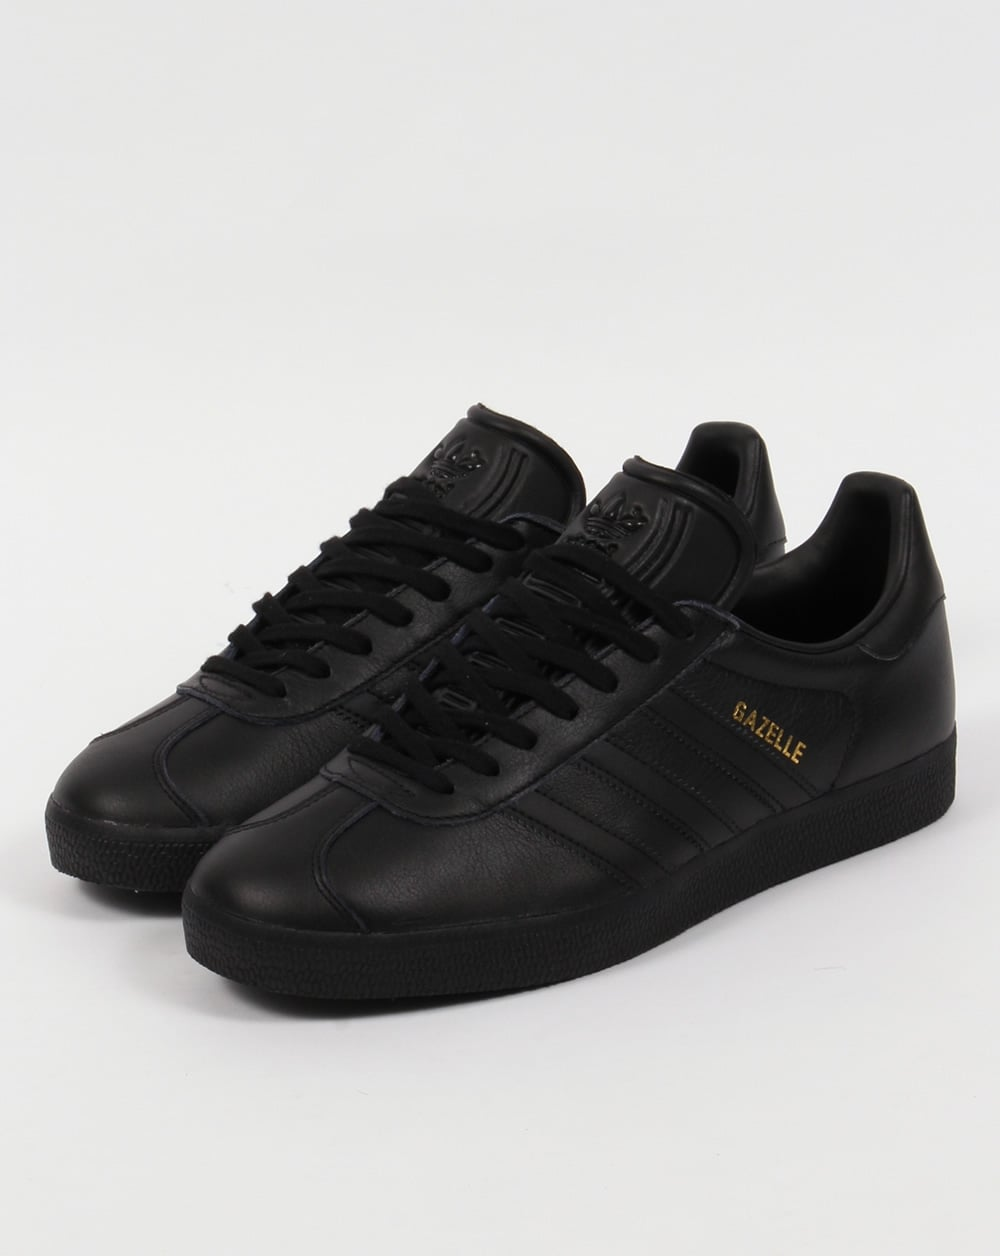 Adidas Originals Black Leather Shoes